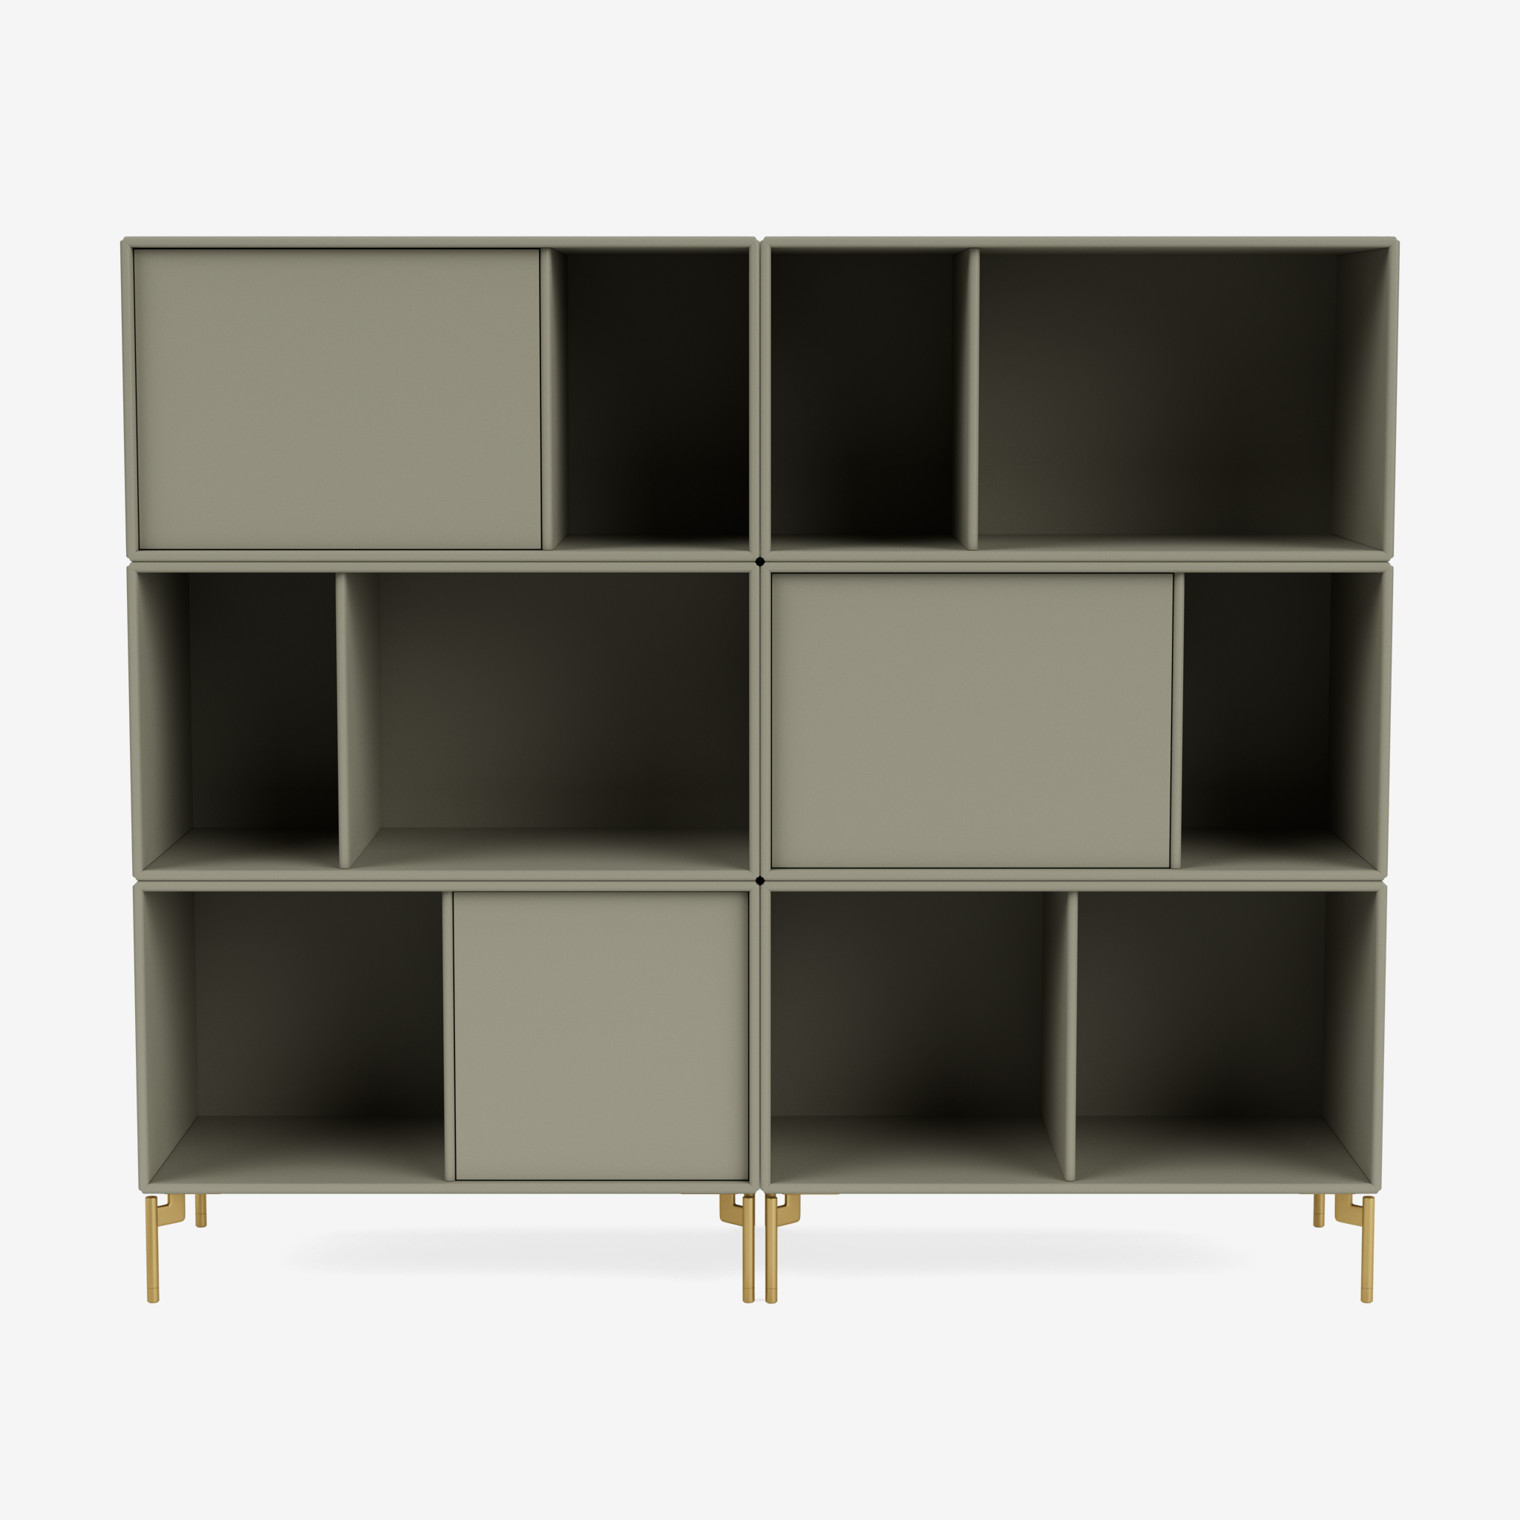 FLUTTER highboard